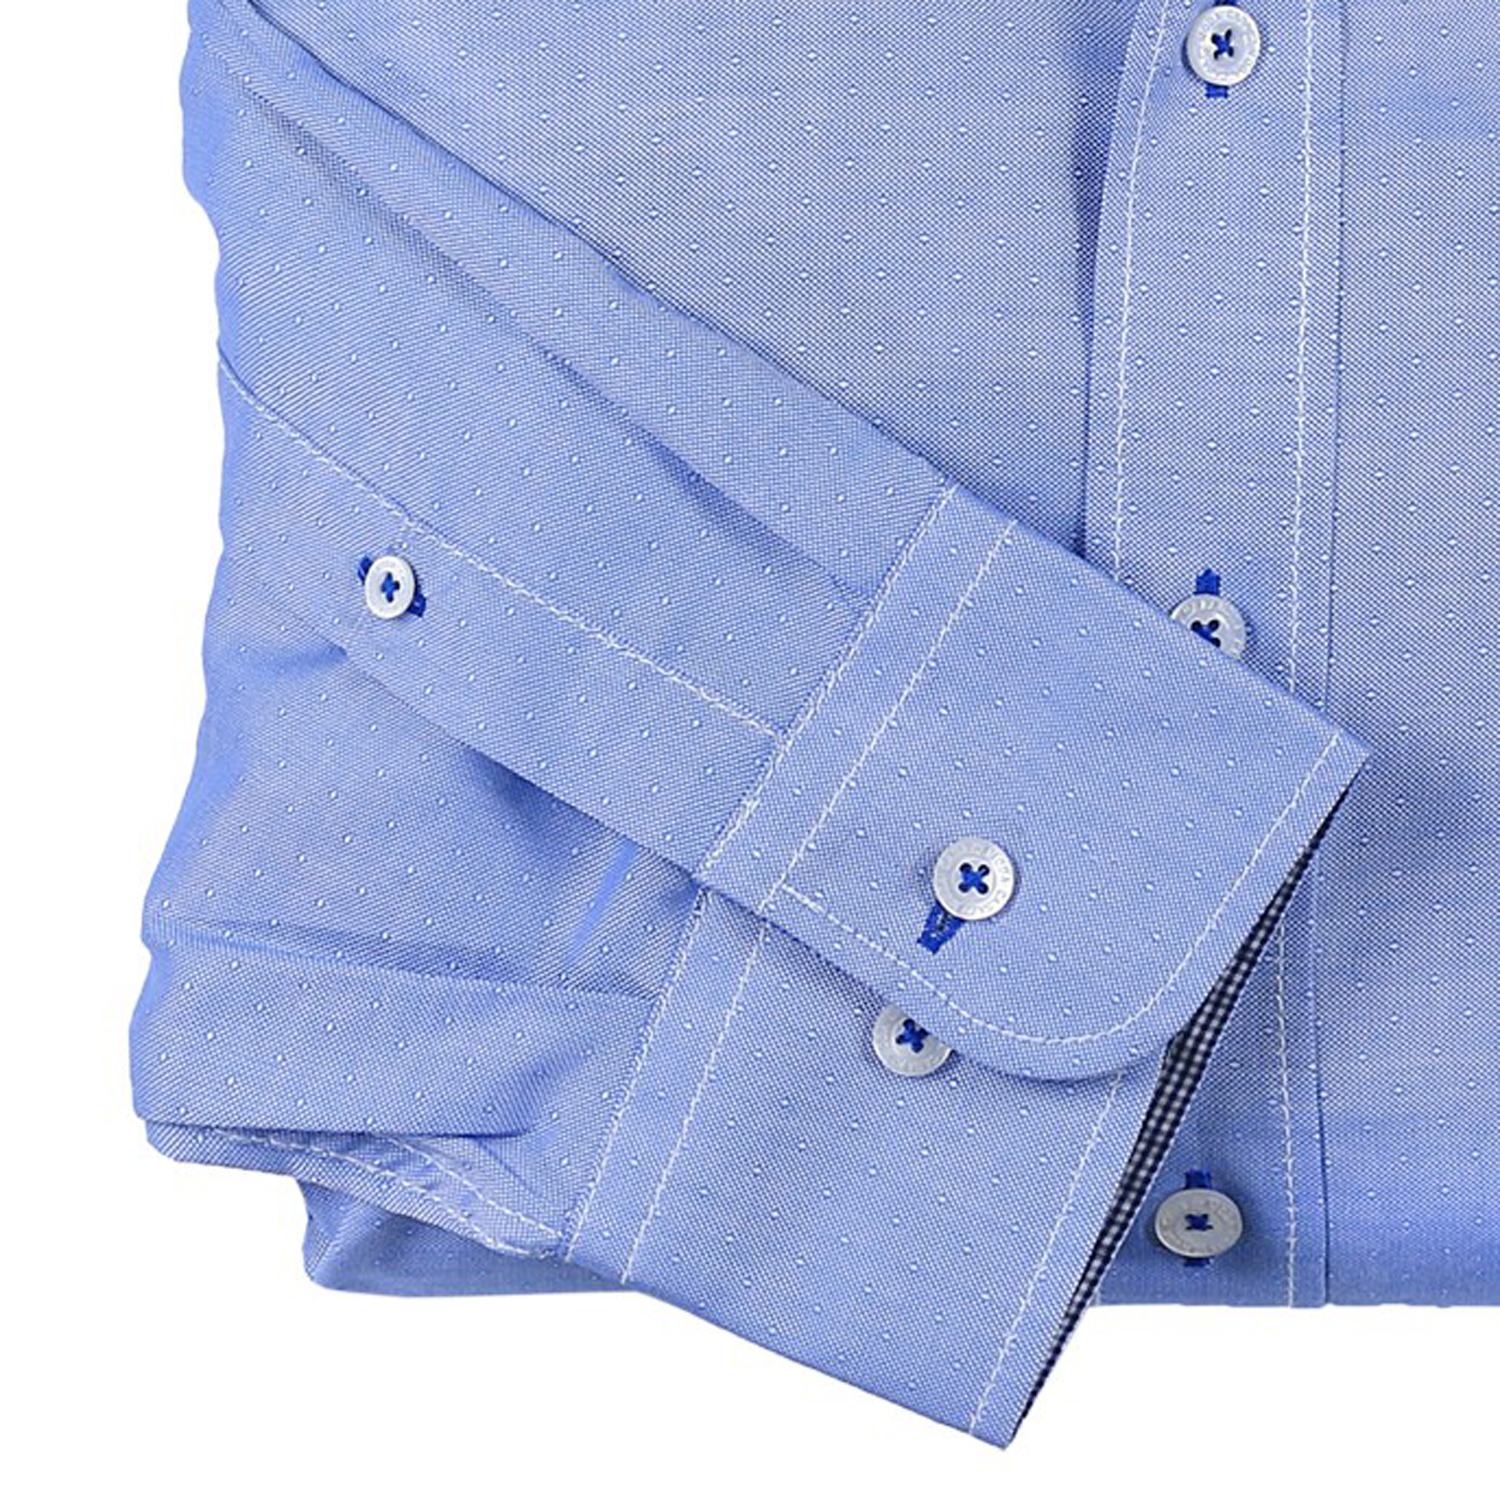 Detail Image to Shirt long by Casamoda, blue, in plus size up to 7XL